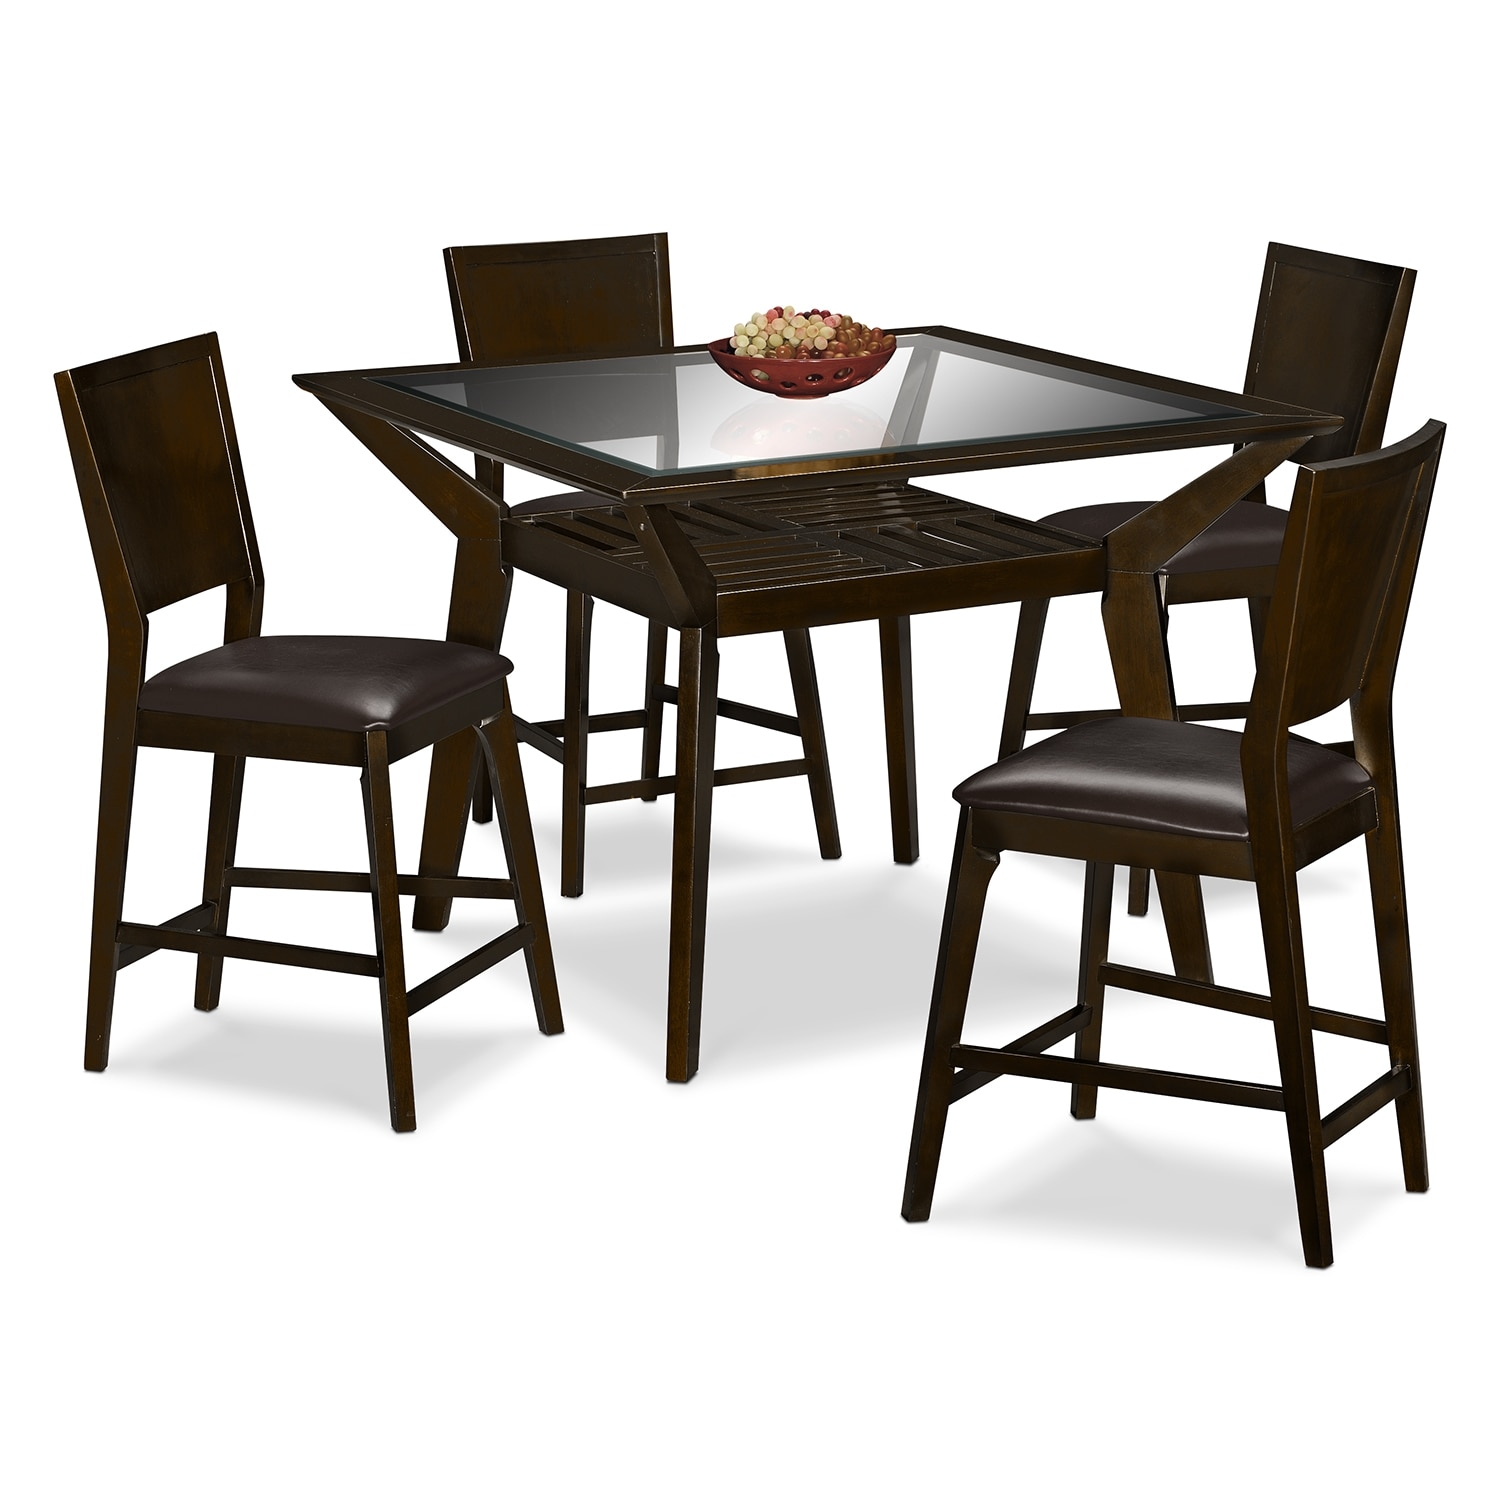 American Signature Furniture Mystic Dining Room 5 Pc Counter Height Dinette